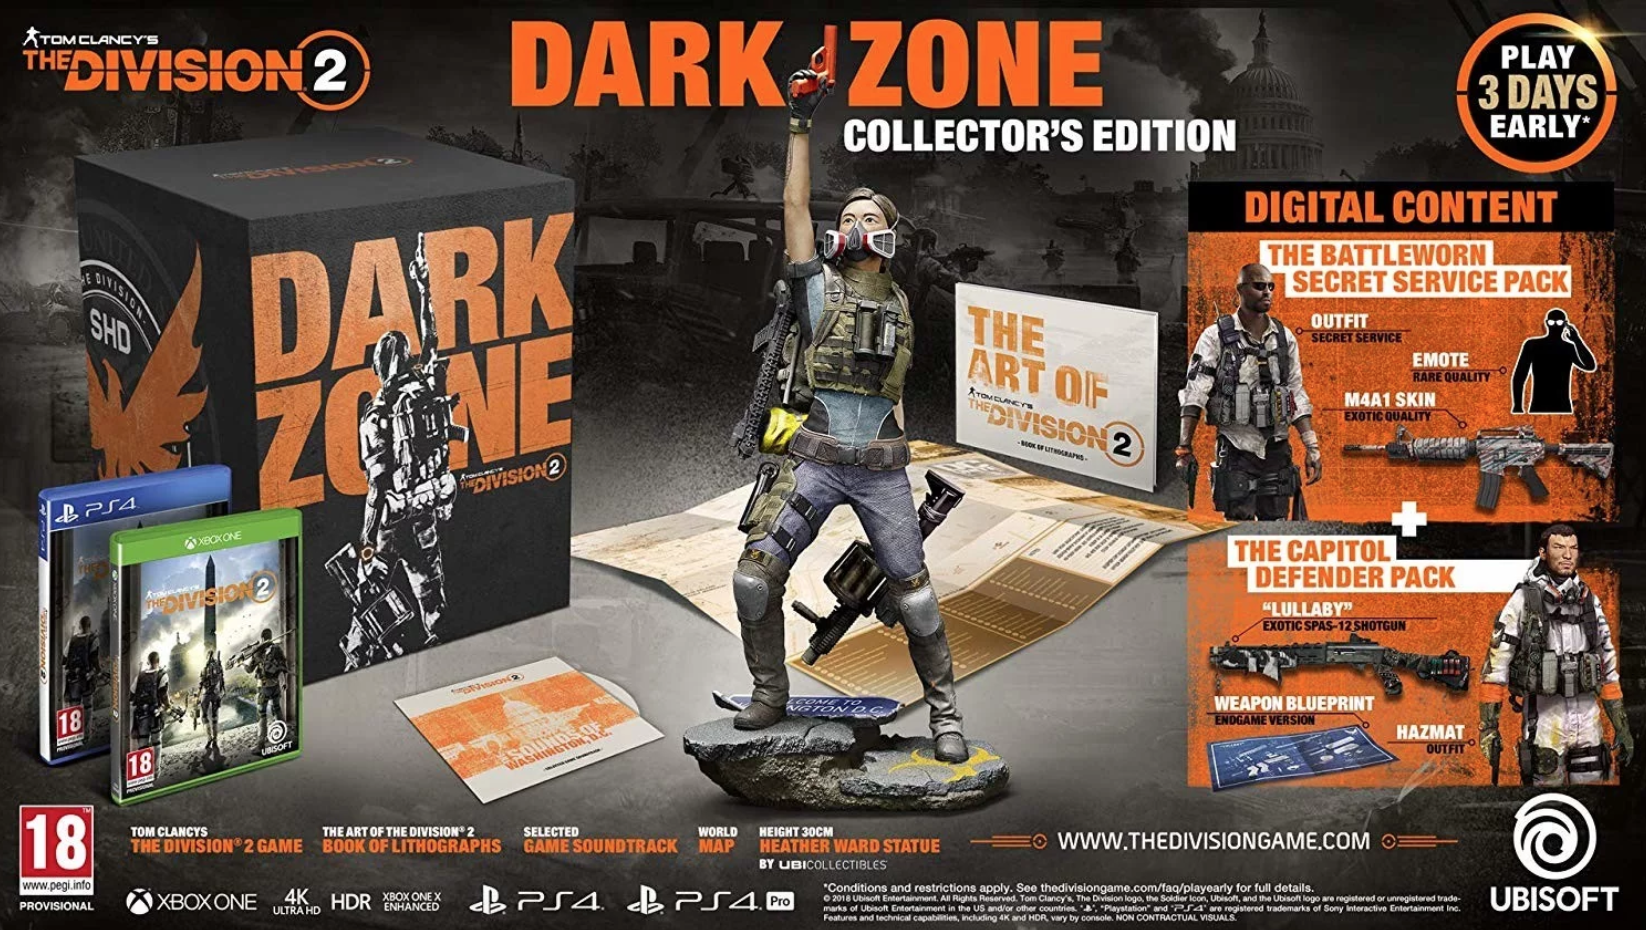 The Dark Zone Edition